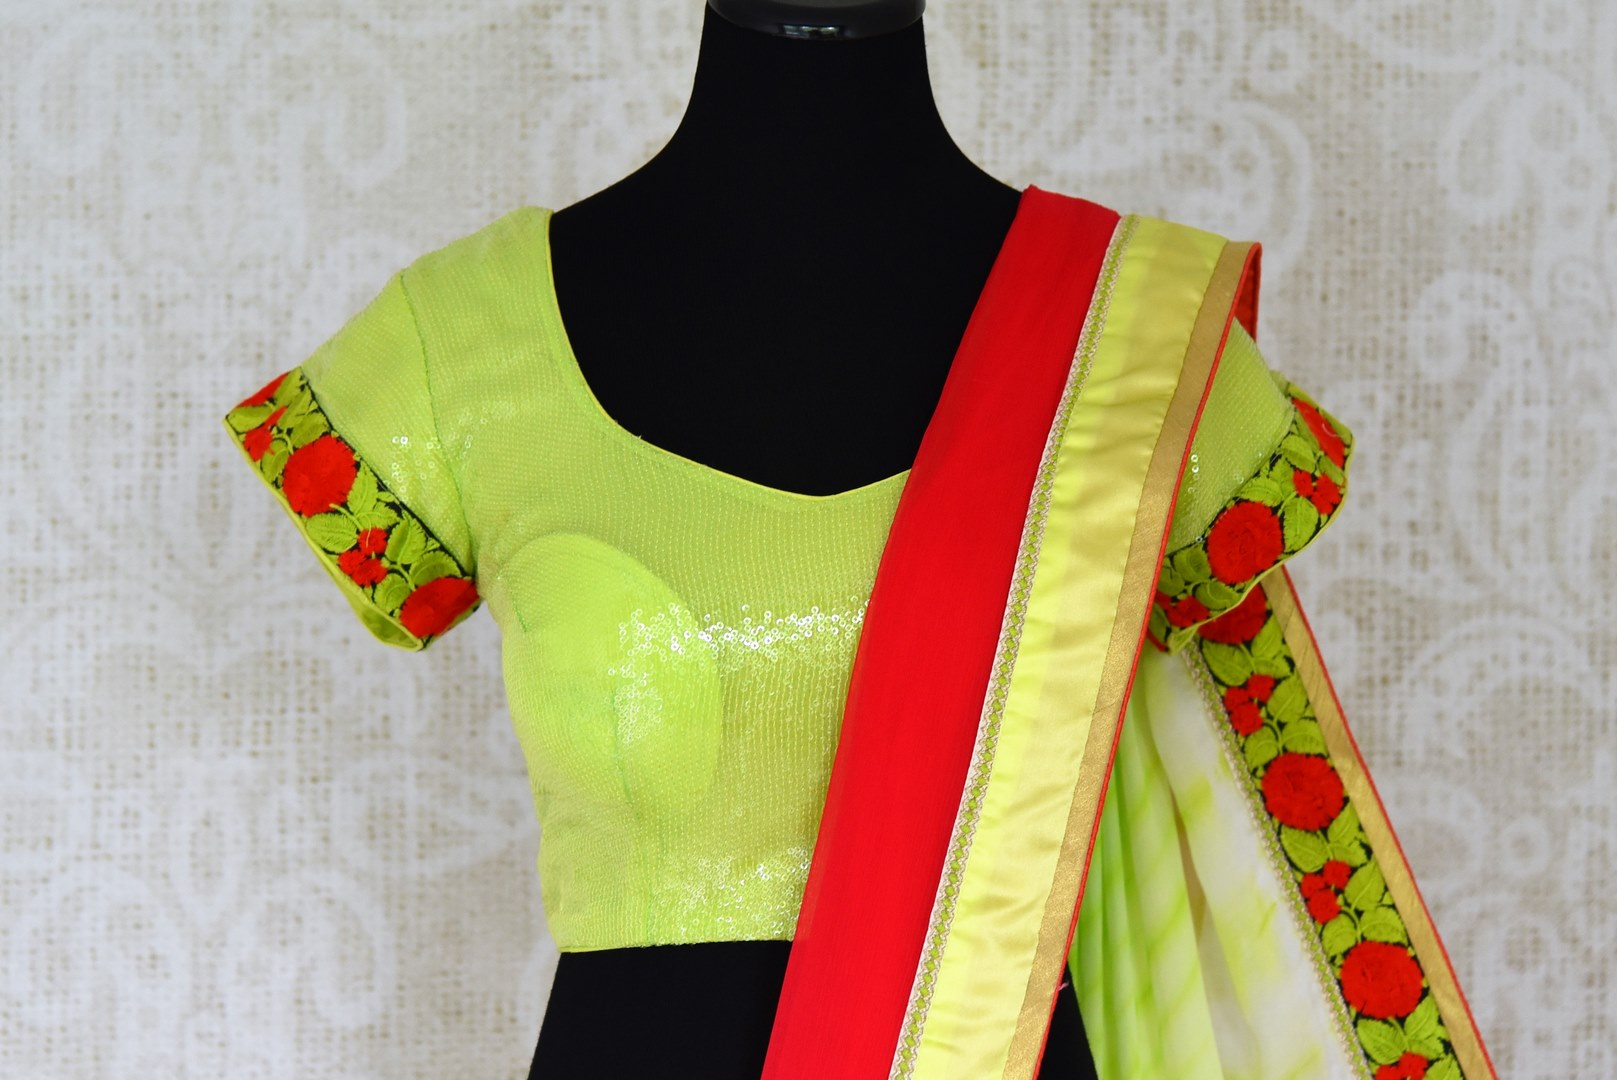 Buy red chiffon saree online in USA with neon green saree blouse. Shop the latest designer saris for weddings and special occasions from Pure Elegance Indian clothing store in USA.-blouse pallu